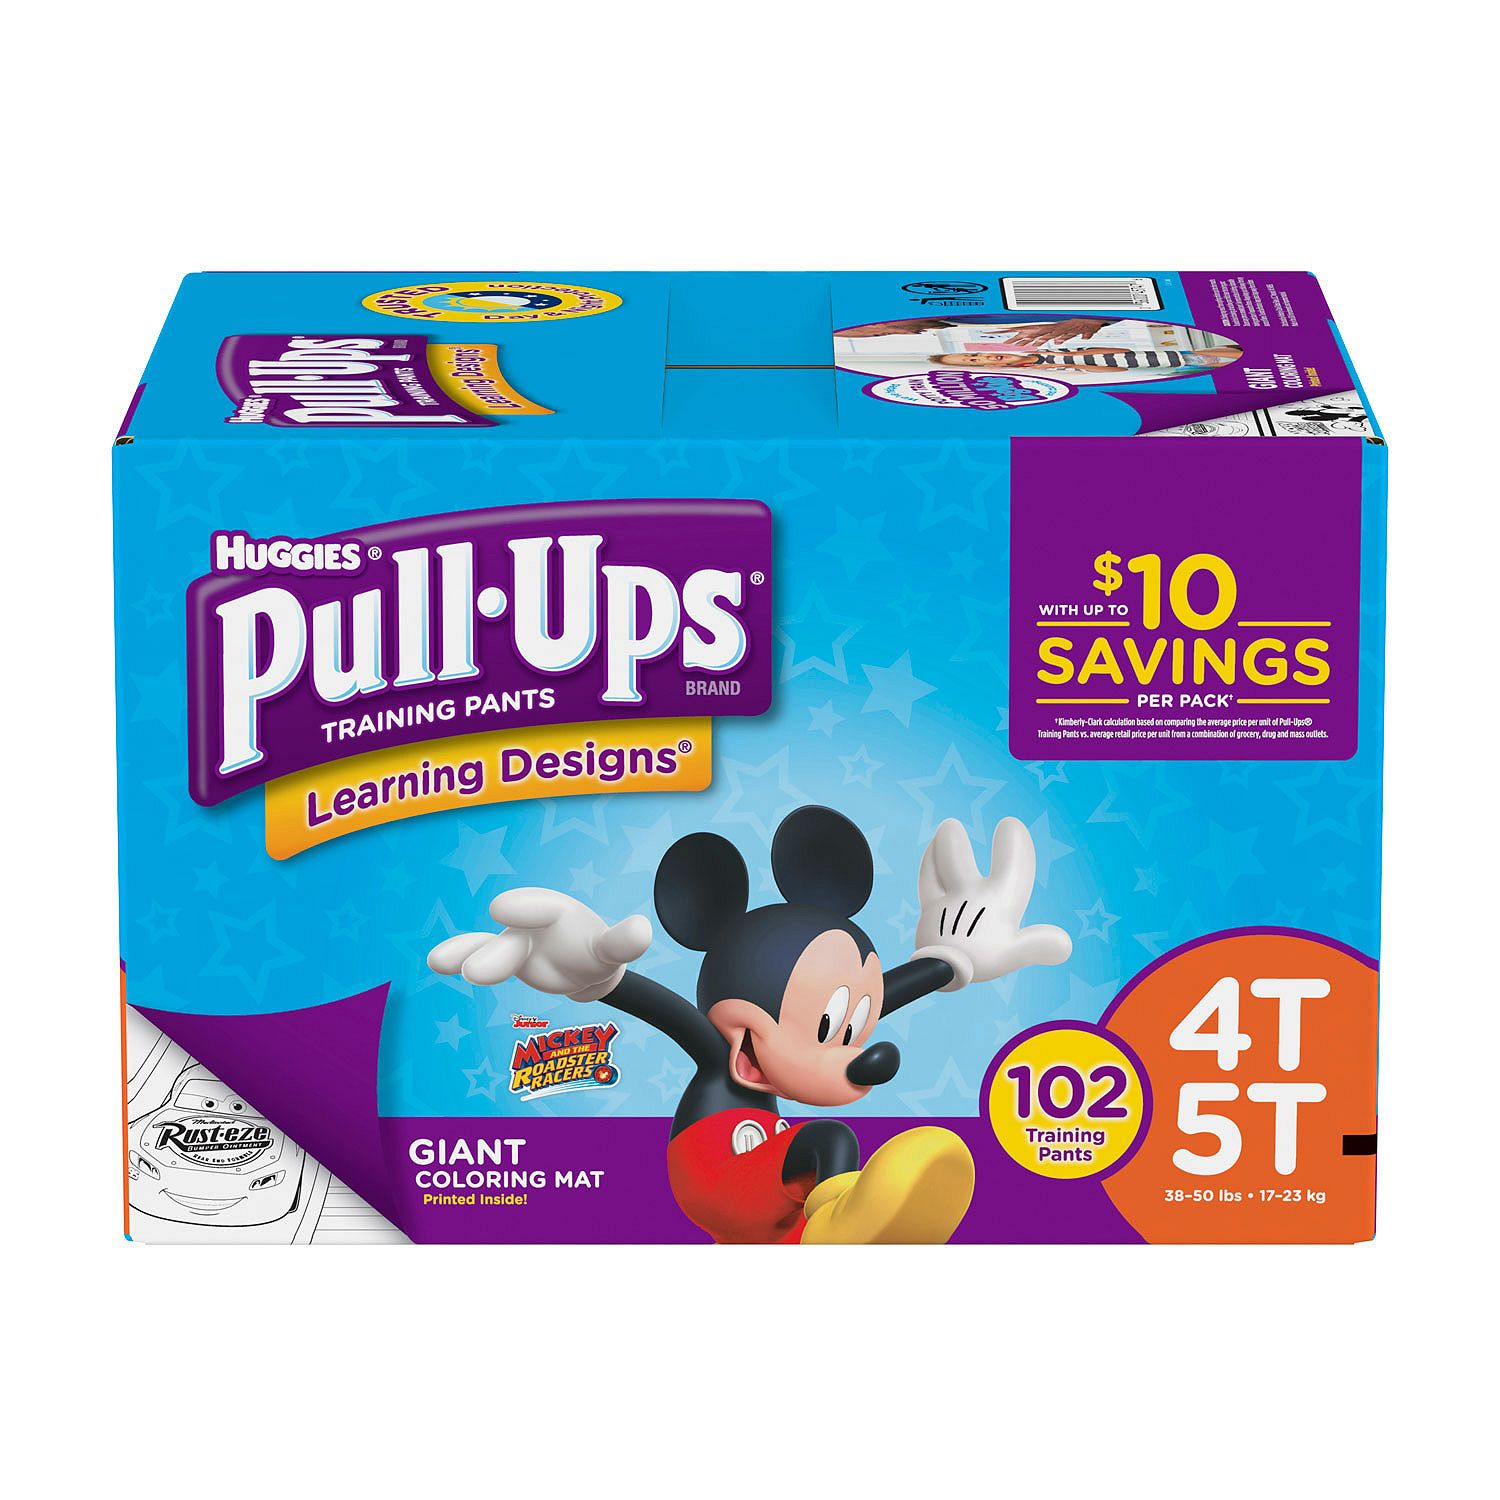 Huggies Pull-ups Training Pants for Boys Size 4T/5T Boys ( Weight 102 ct.) - Bulk Qty, Free Shipping - Comfortable, Soft, No leaking & Good nite Training Pants